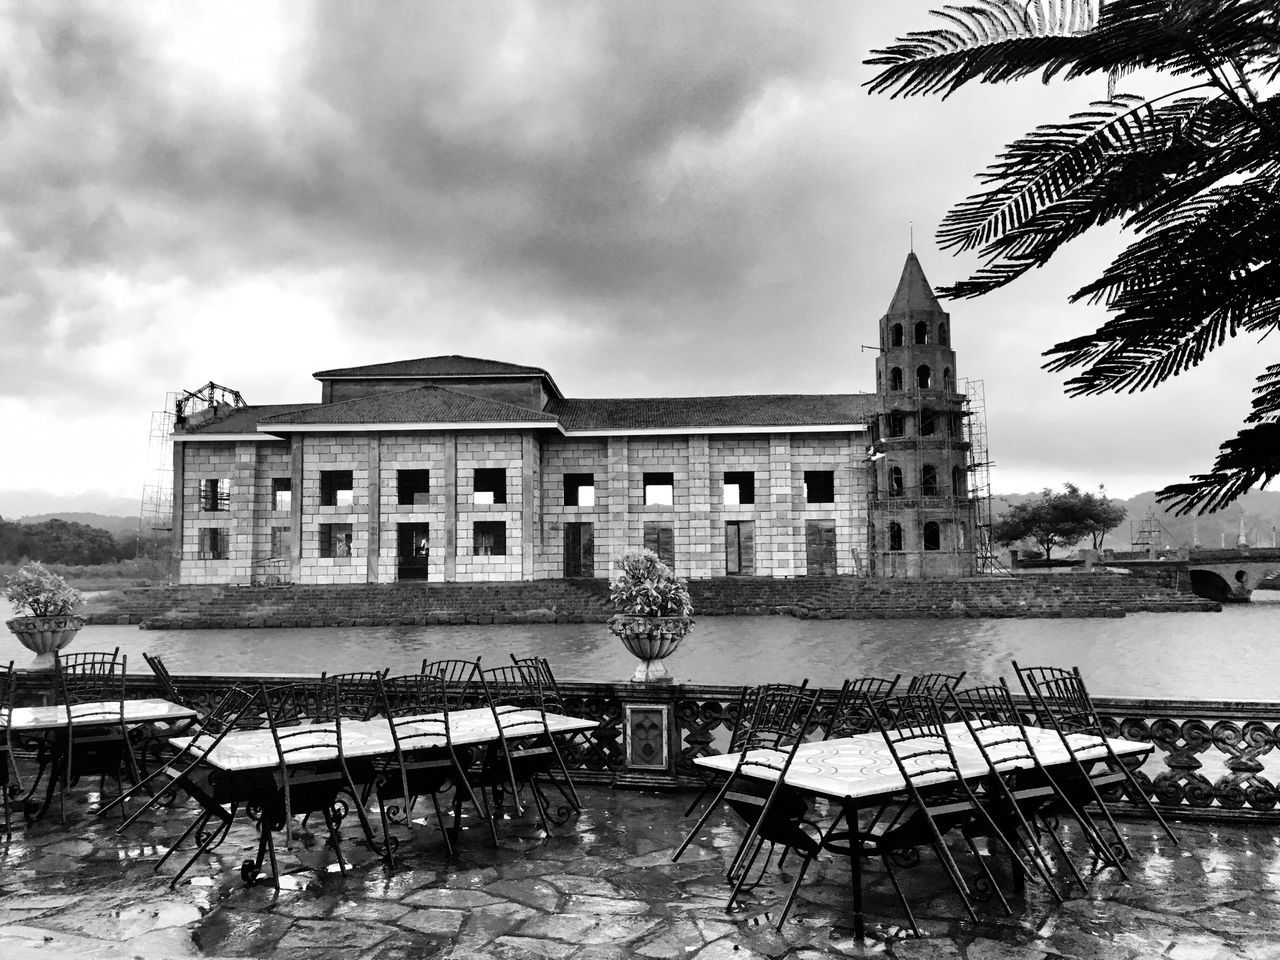 Monochrome Photography Architecture Built Structure Building Exterior Water Sky Cloud - Sky Fountain History Day Waterfront Outdoors Famous Place No People Cloudy Façade Tourism City Life Architectural Column